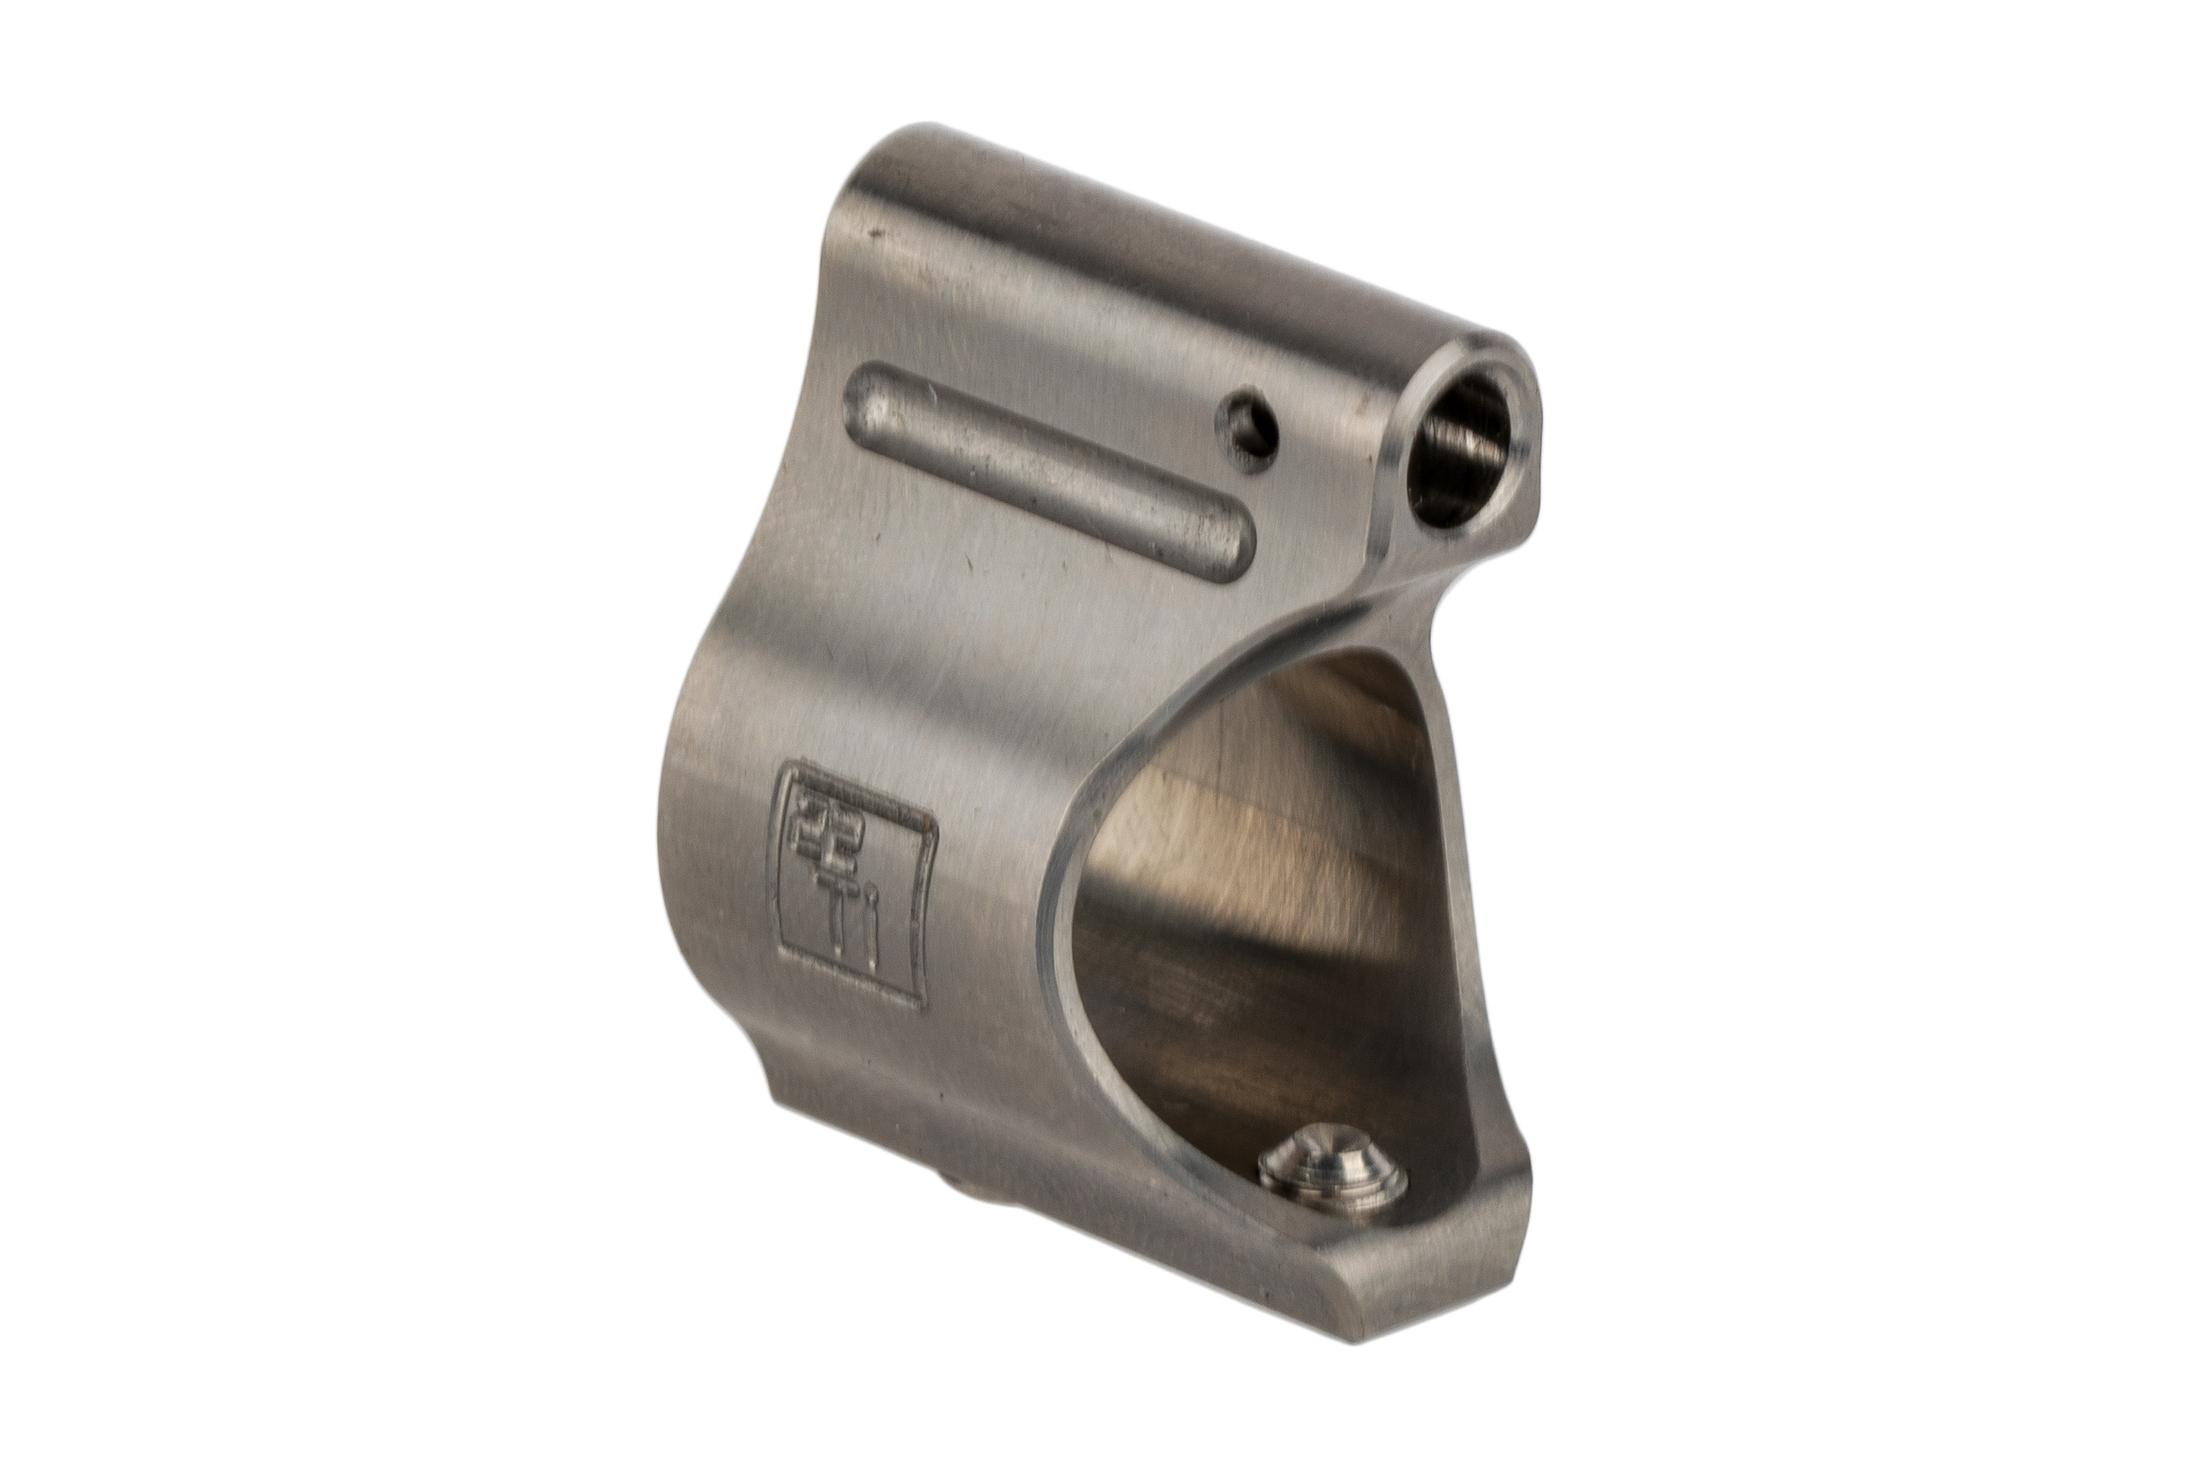 The Battle Arms Development Titanium gas block features a .625 inch inner diameter